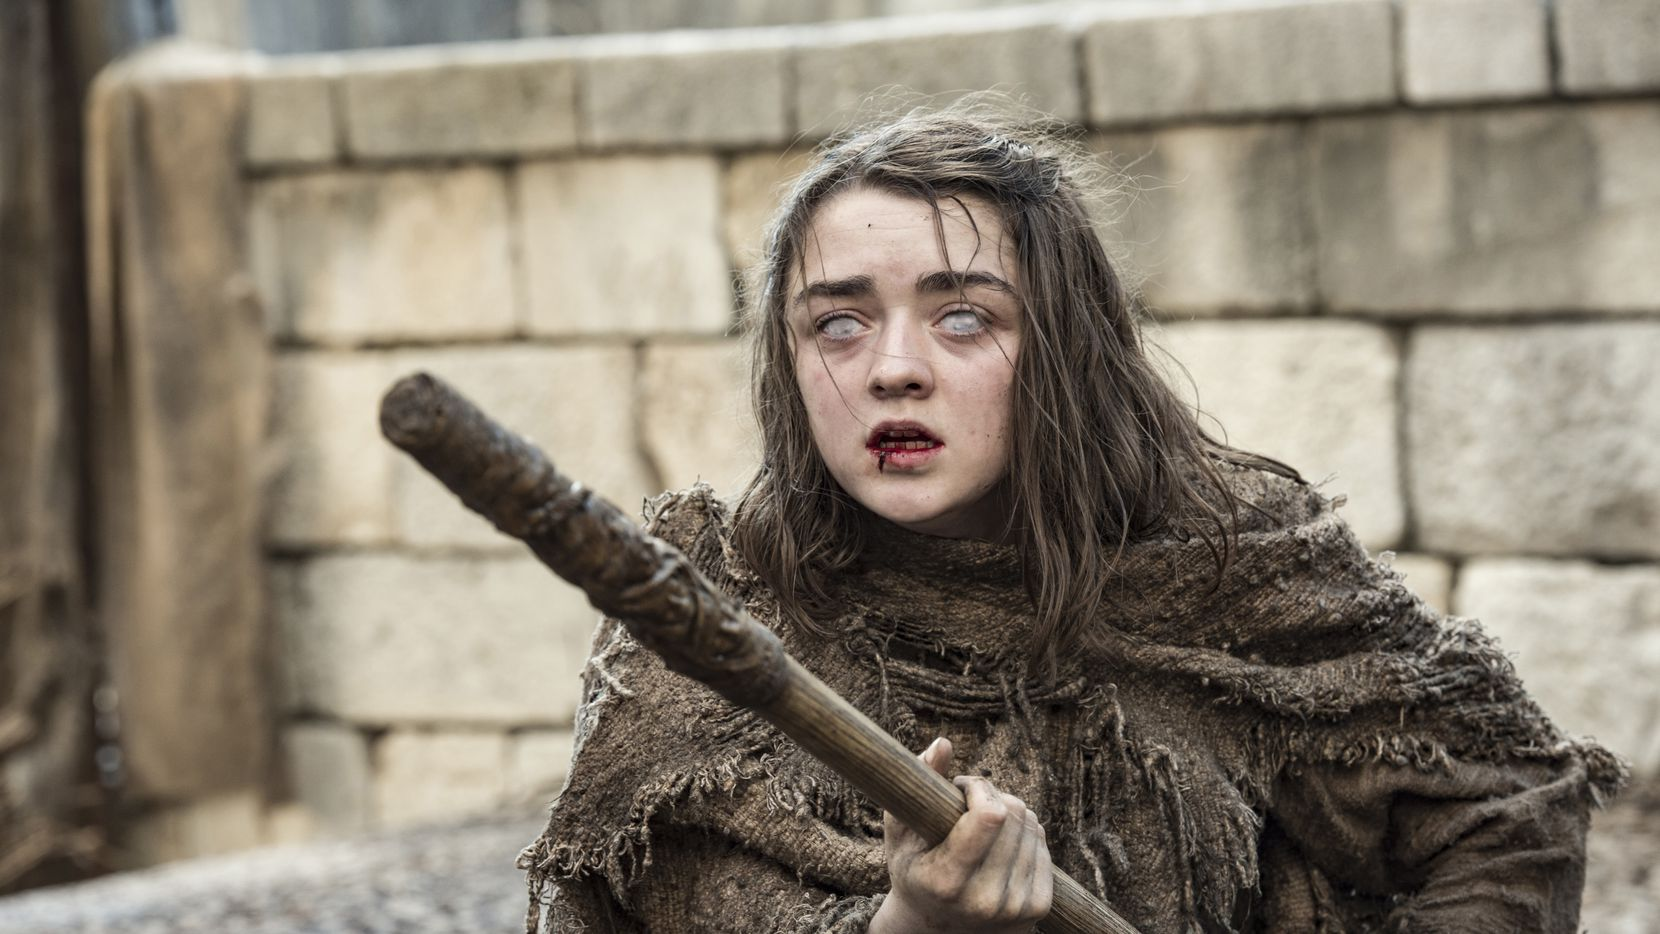 Blinded for blatantly ignoring the rules of the Faceless Men, Arya Stark (Maisie Williams) is just one of several characters to find themselves in less-than-stellar circumstances.